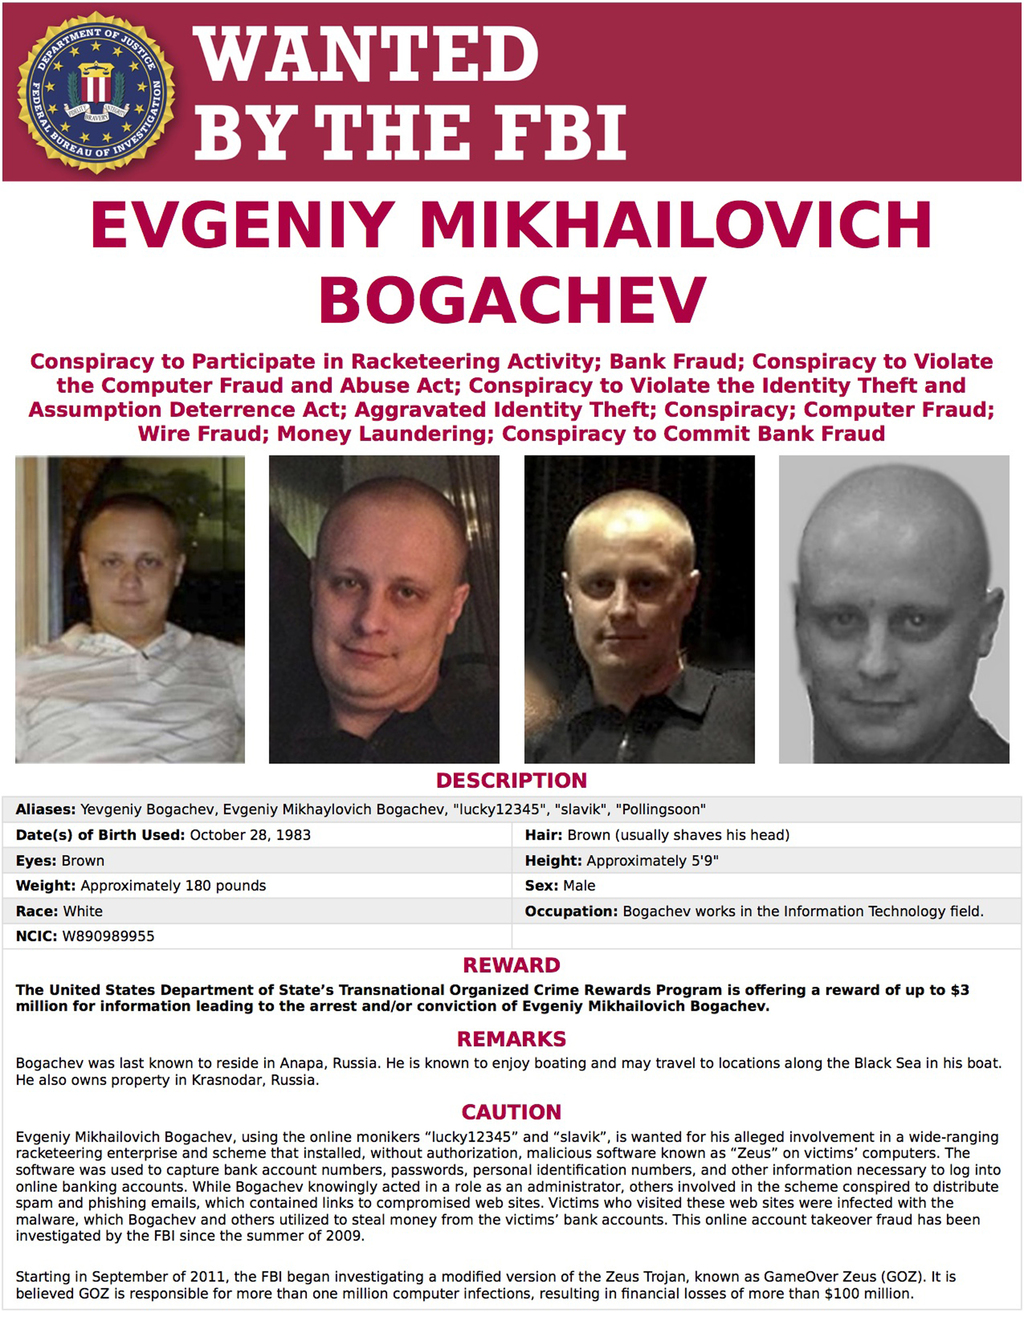 This image provided by the FBI shows the wanted poster for Evgeniy Bogachev. In a sweeping response to election hacking, President Bara...